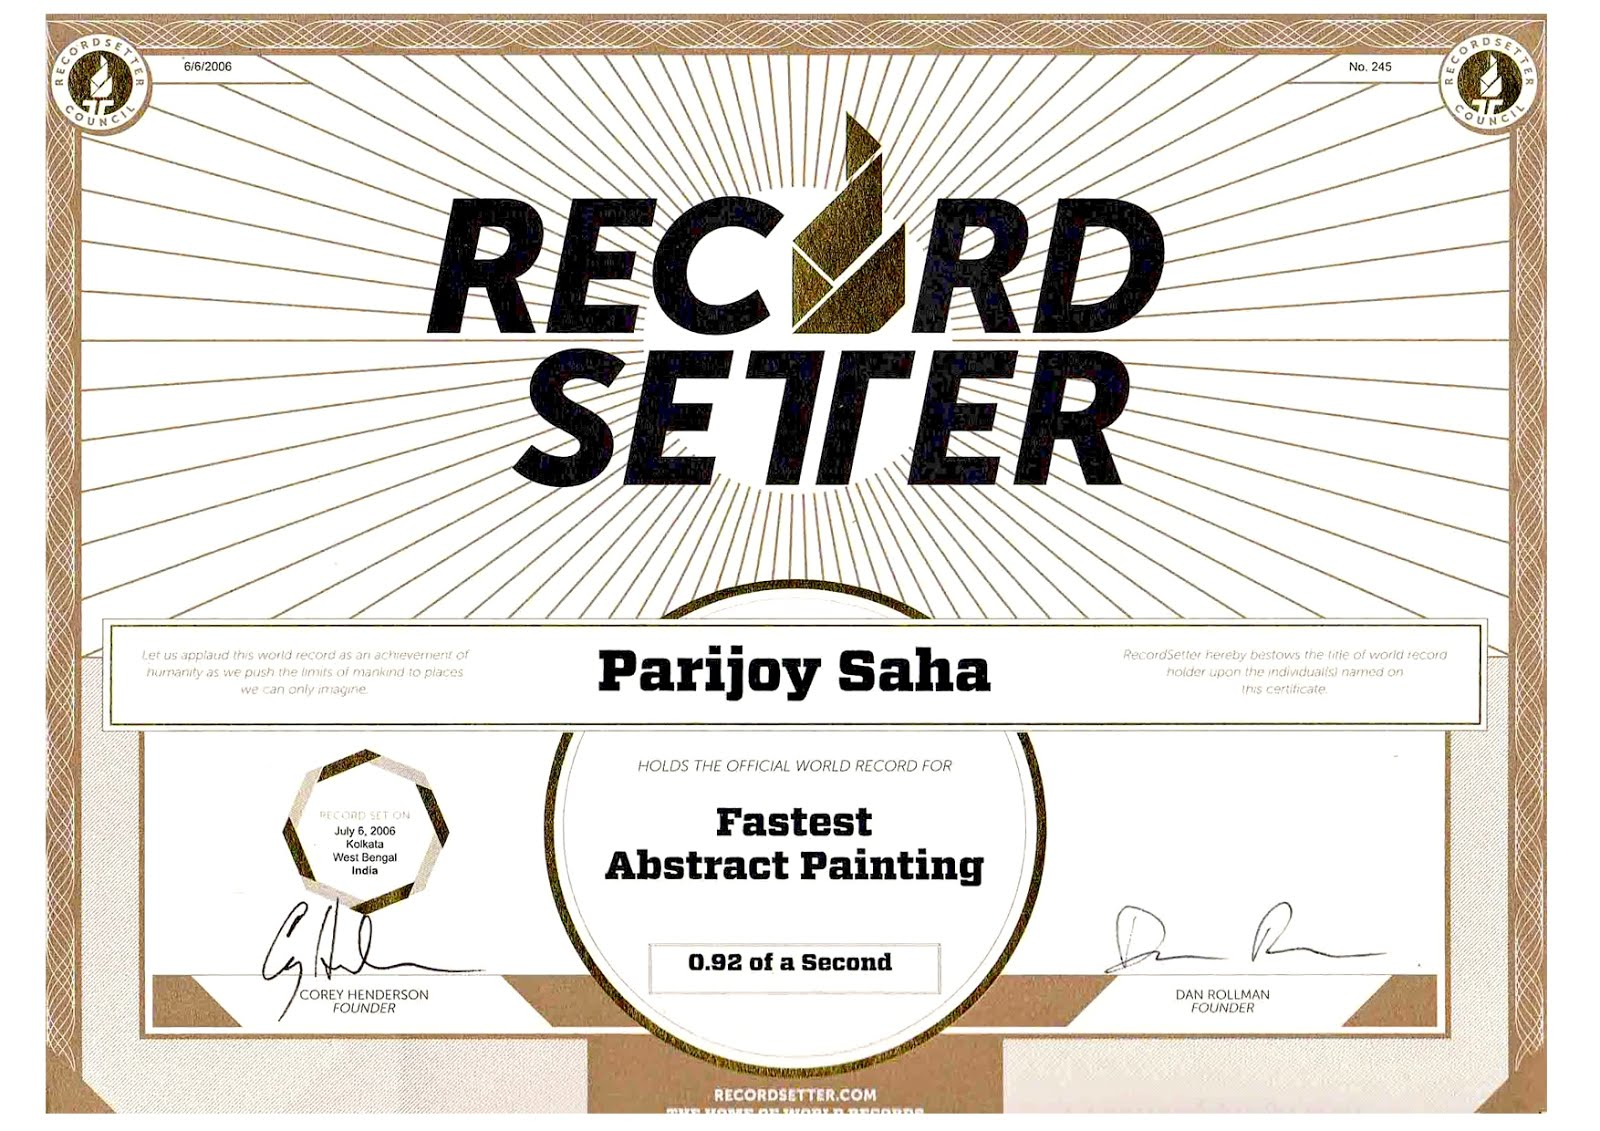 World's Fastest Painting 0.92 fraction of a Second